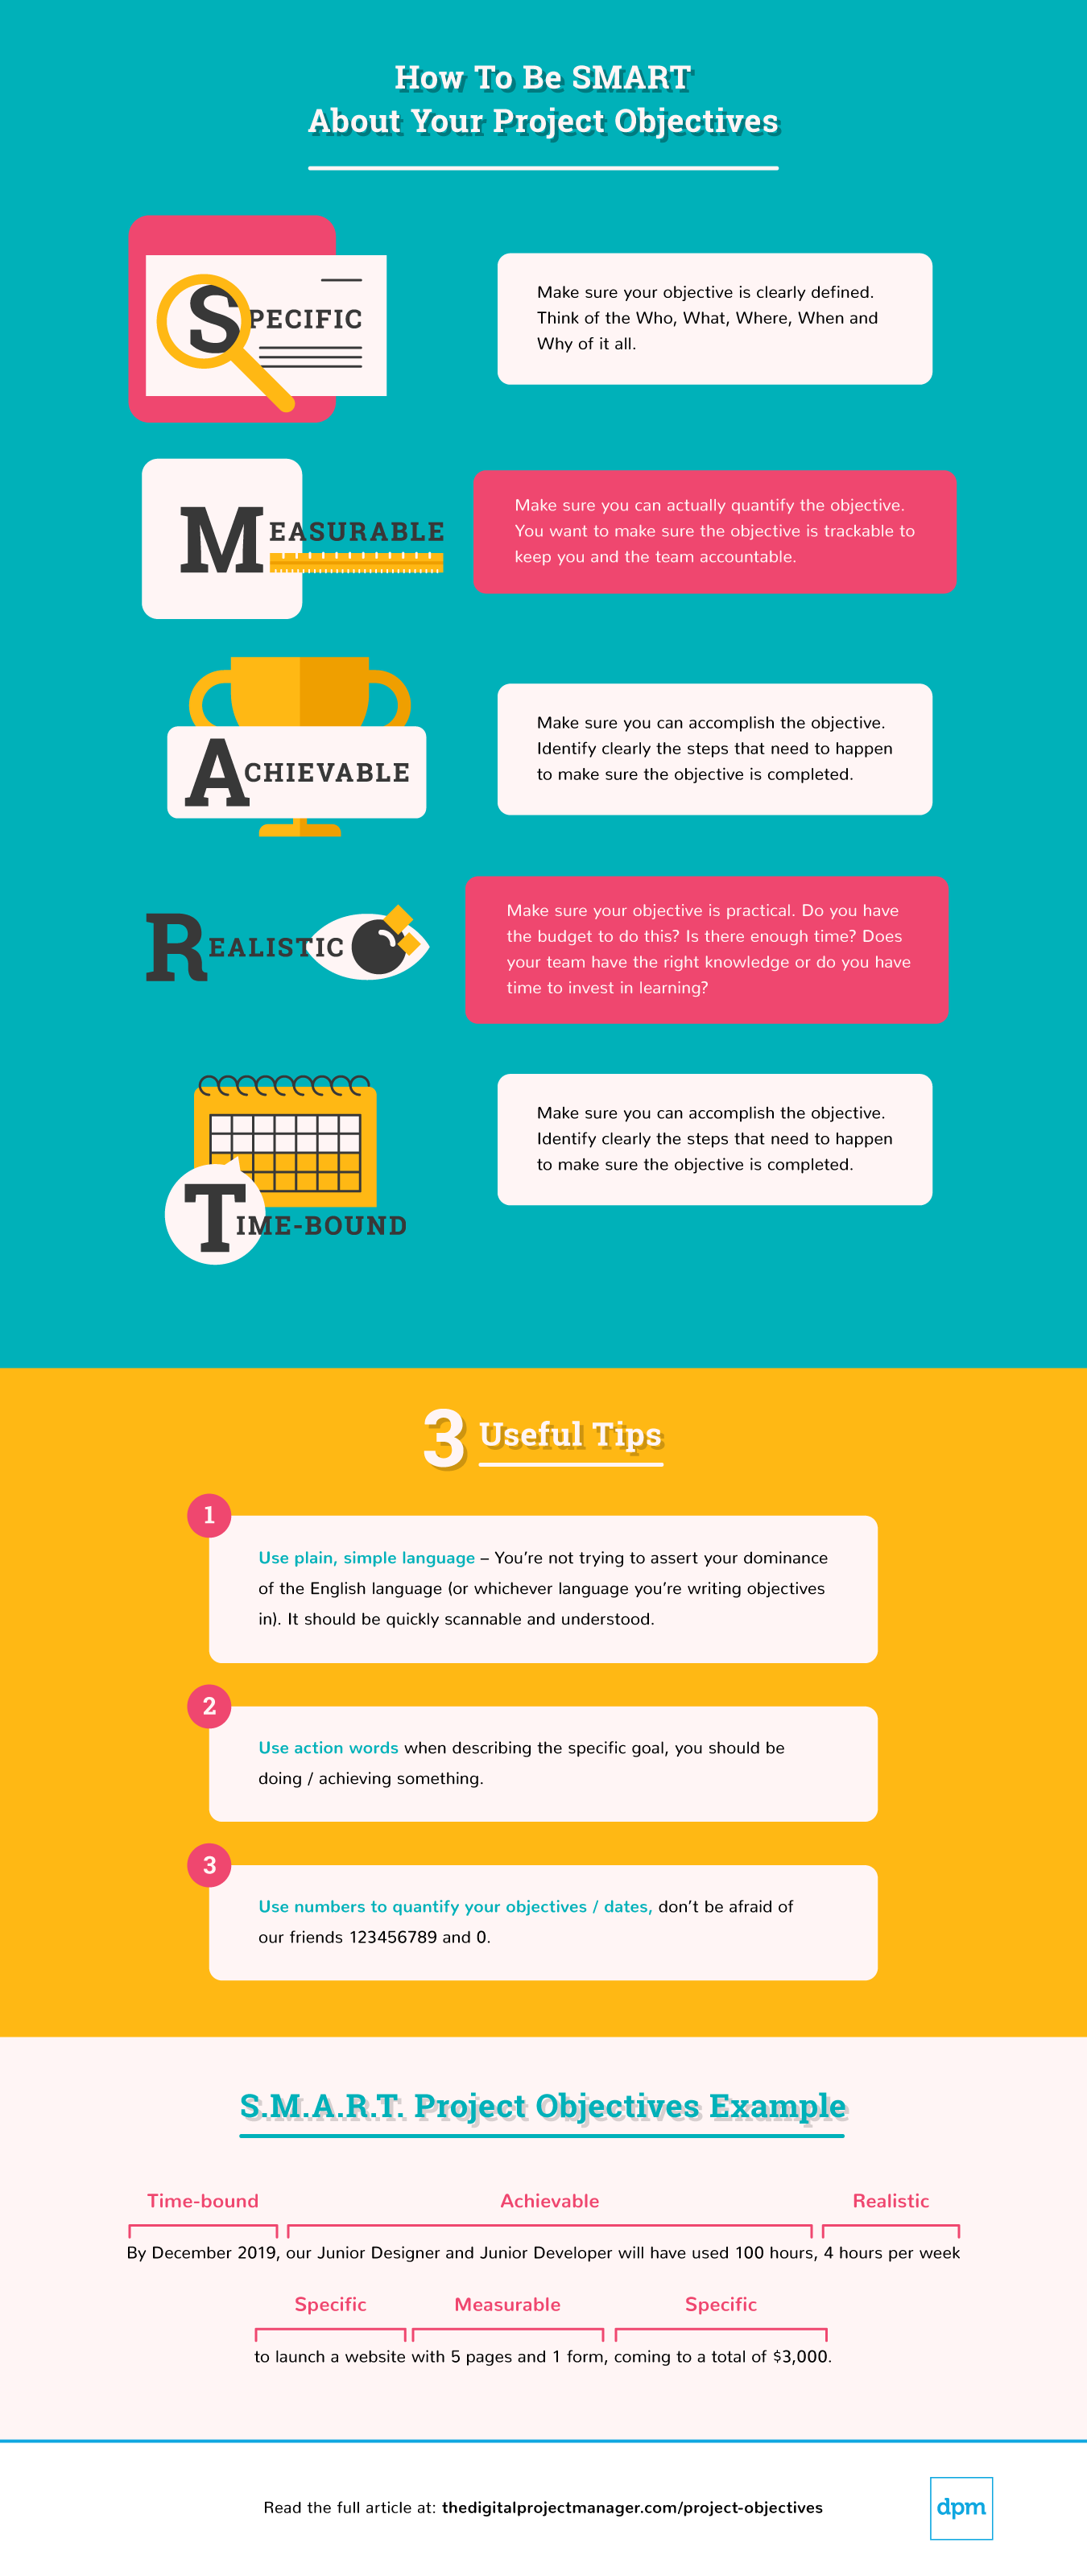 21 Project Objectives Examples & How To Write Them - The Digital